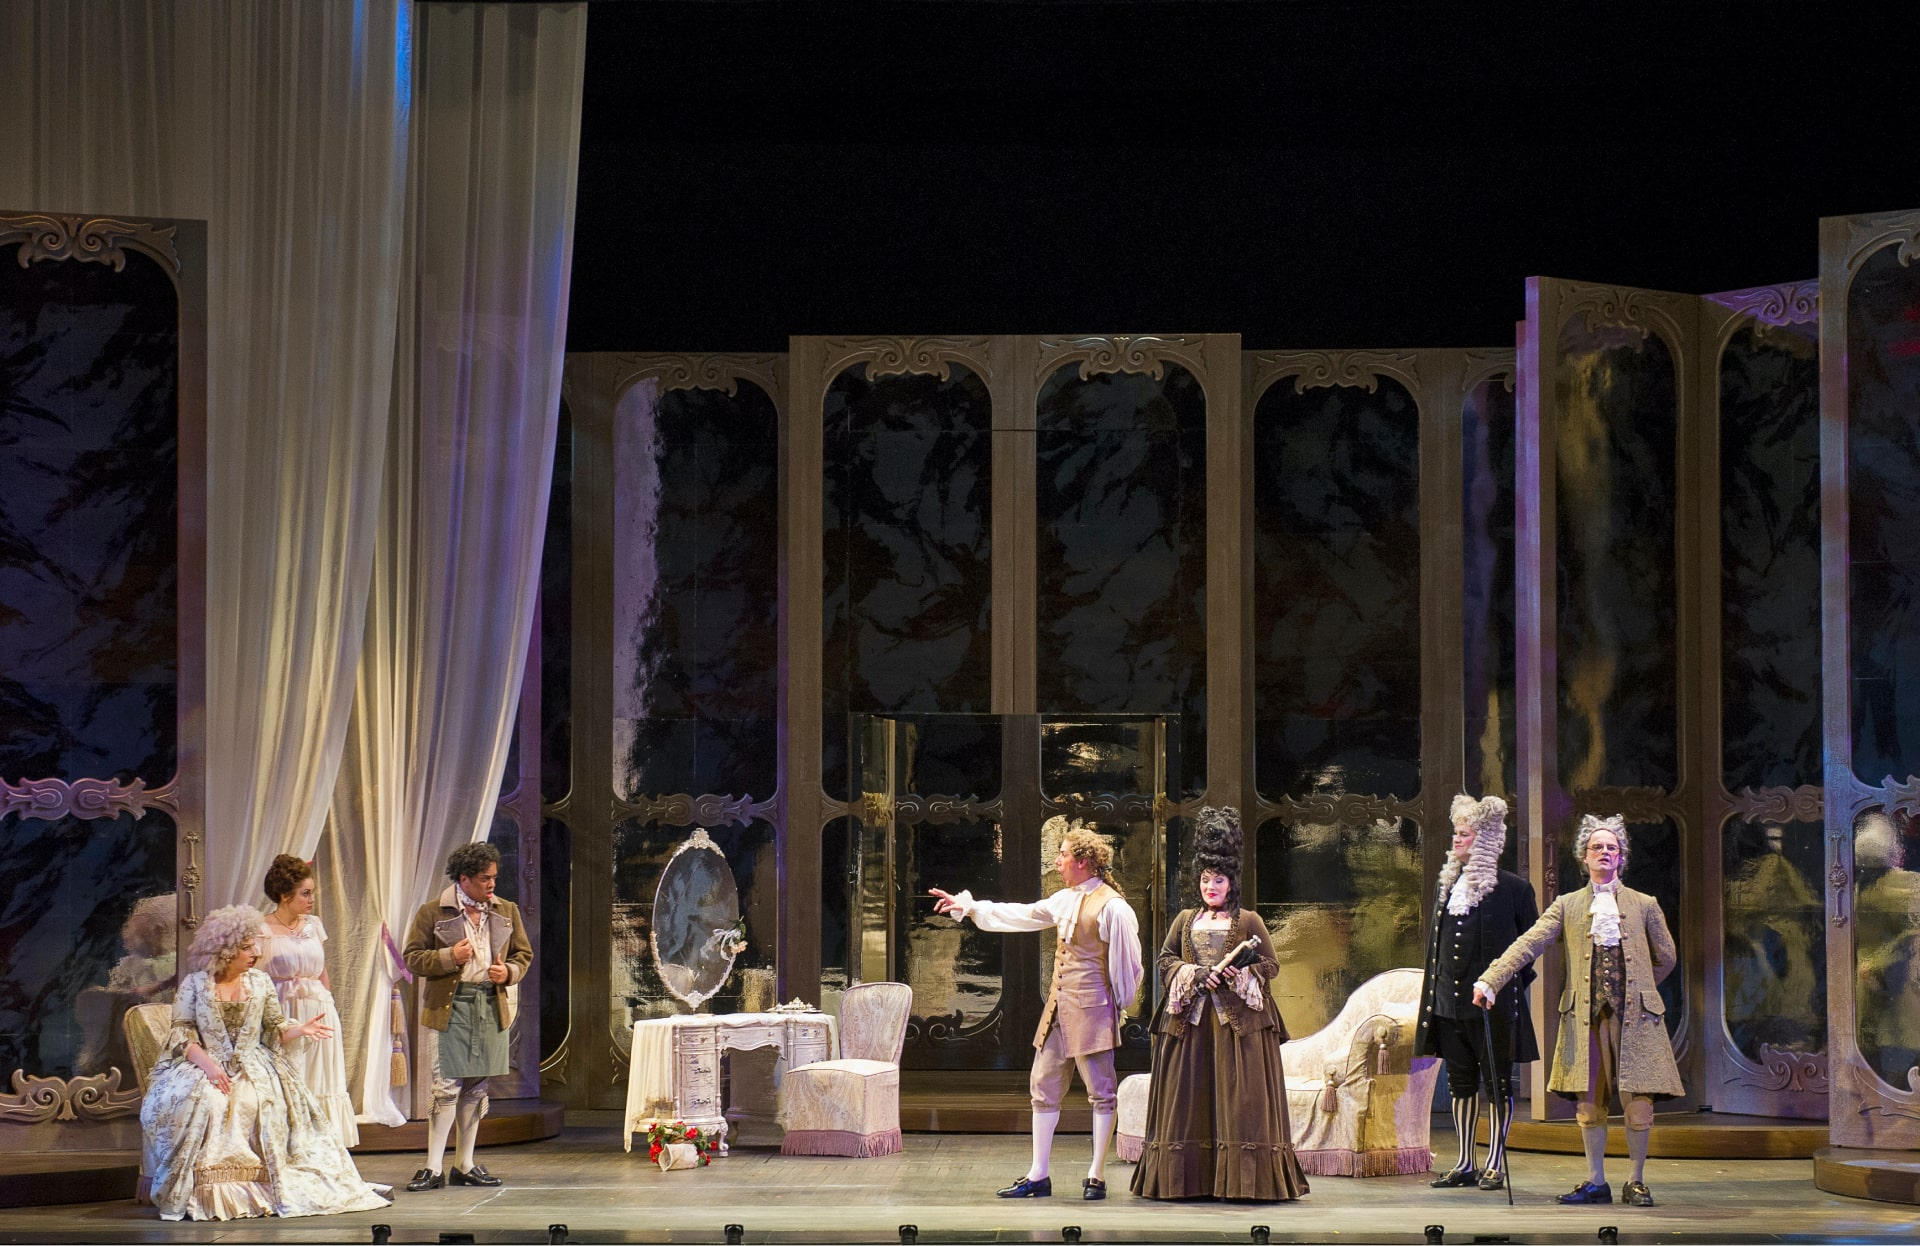 Opera players in 18th century attire scattered across boudoir furnishing in front of towering revolving doors and white swag draperies.